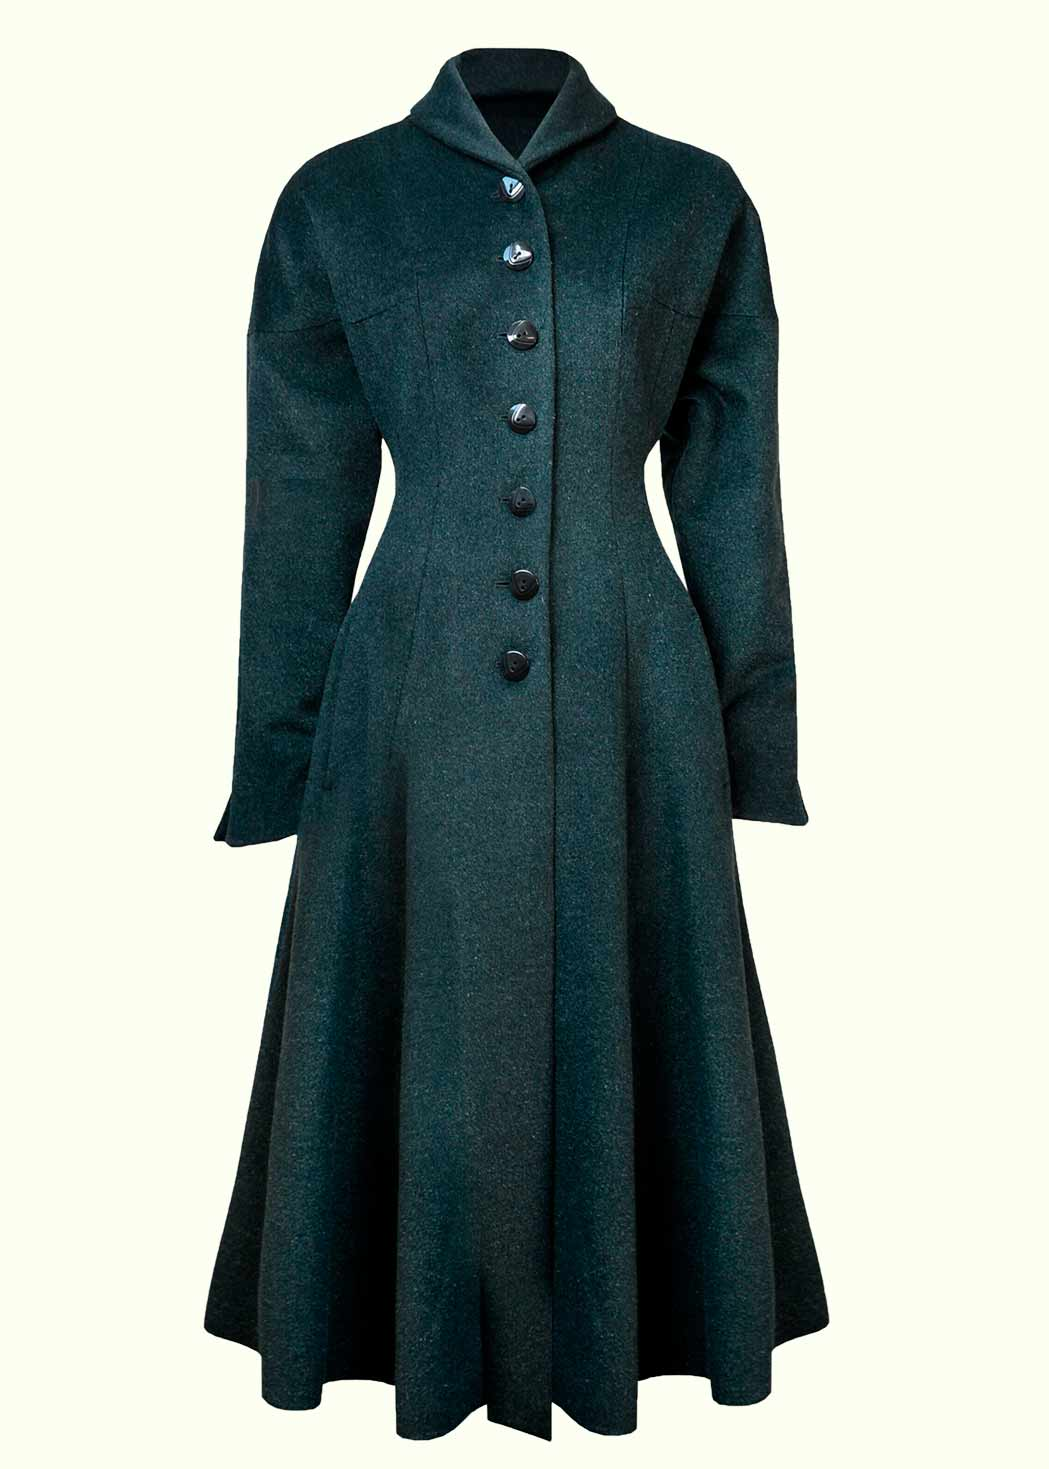 Vintage style swing coat from The House Of Foxy